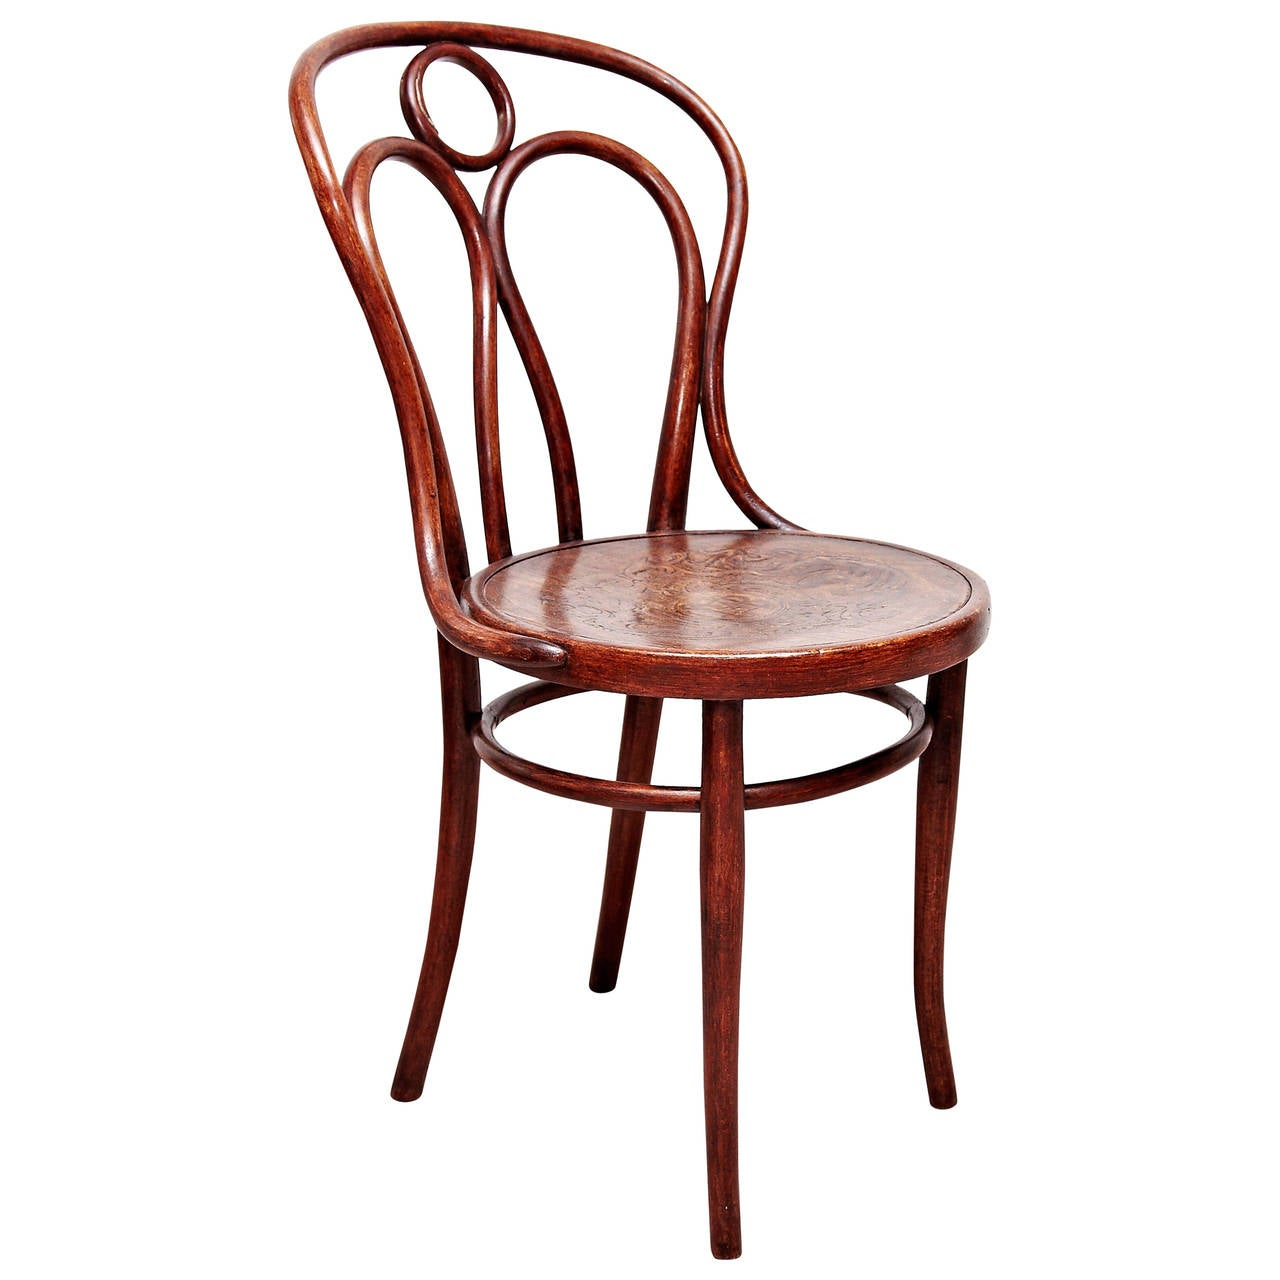 Thonet bentwood Chair nr 31 Stamped and Labeled by Thonet 1890